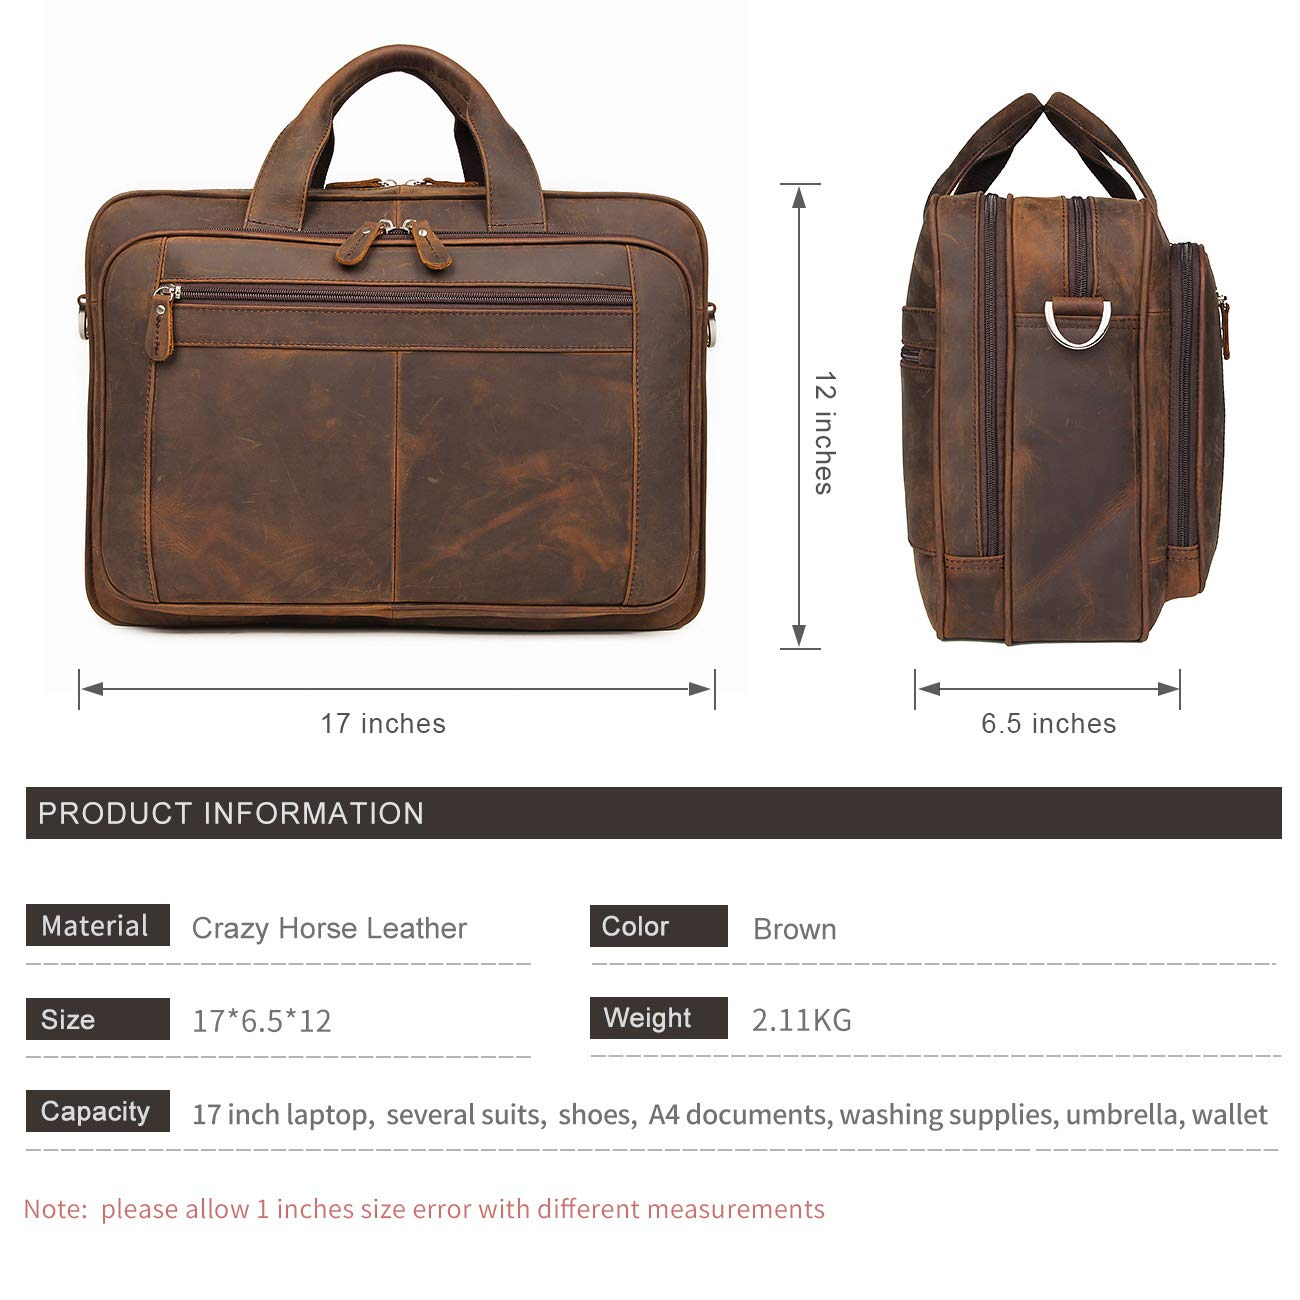 Augus Business Travel Briefcase Genuine Leather Duffel Bags for Men Laptop Bag fits 15.6 inches Laptop (Dark brown) by Augus (Image #4)